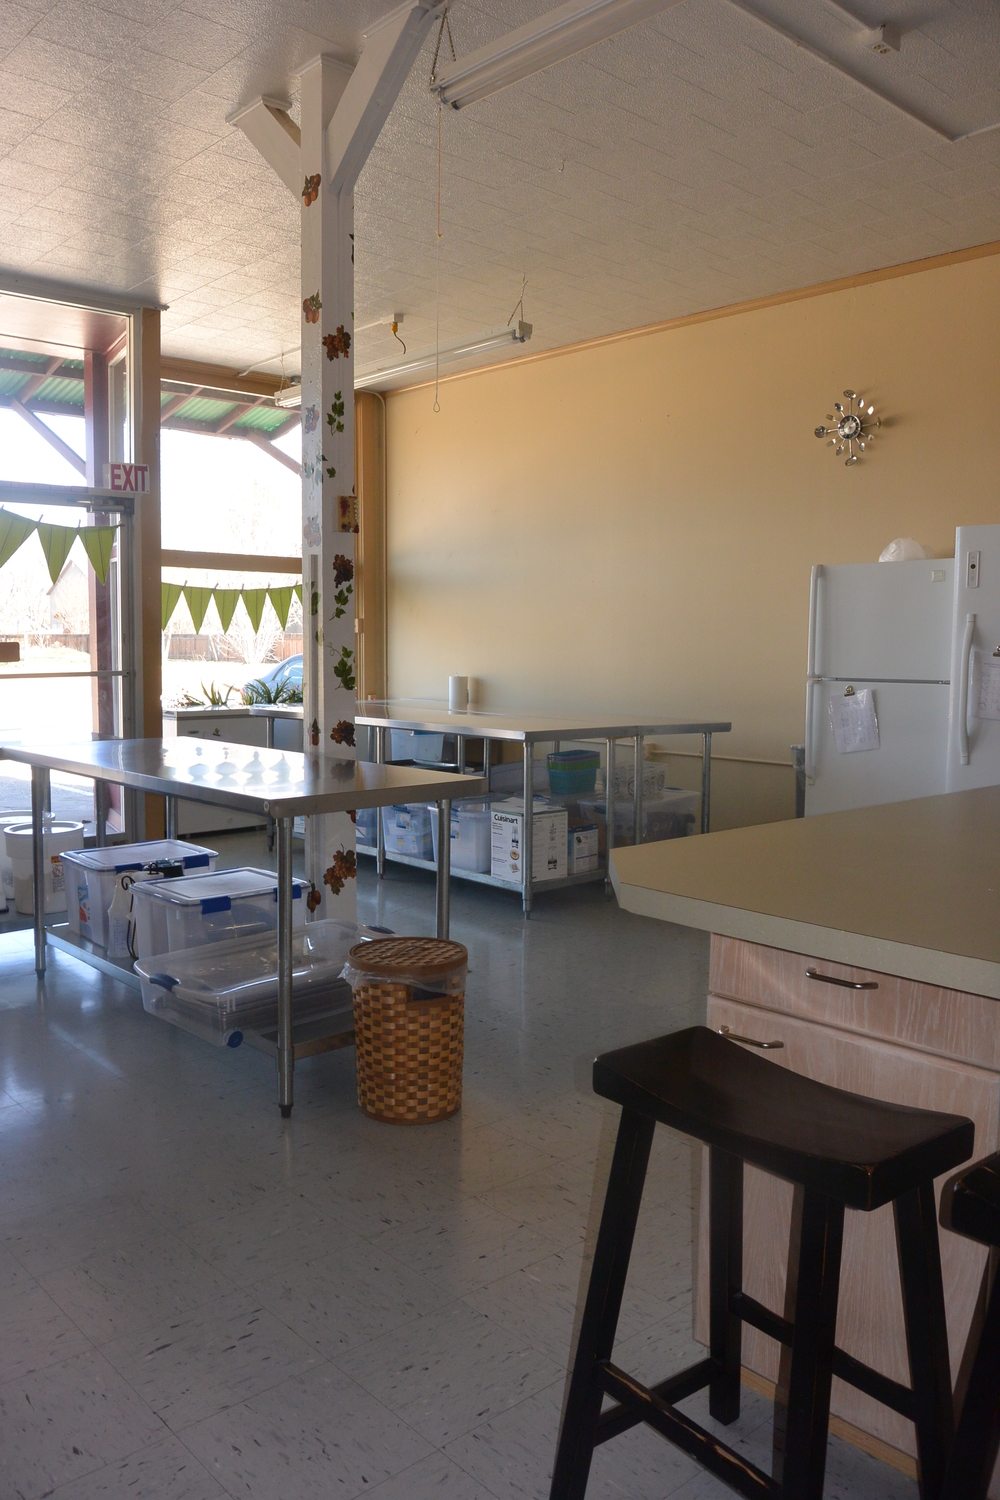 A Clean Well Lighted Space - My First View of the Co-Op Kitchen